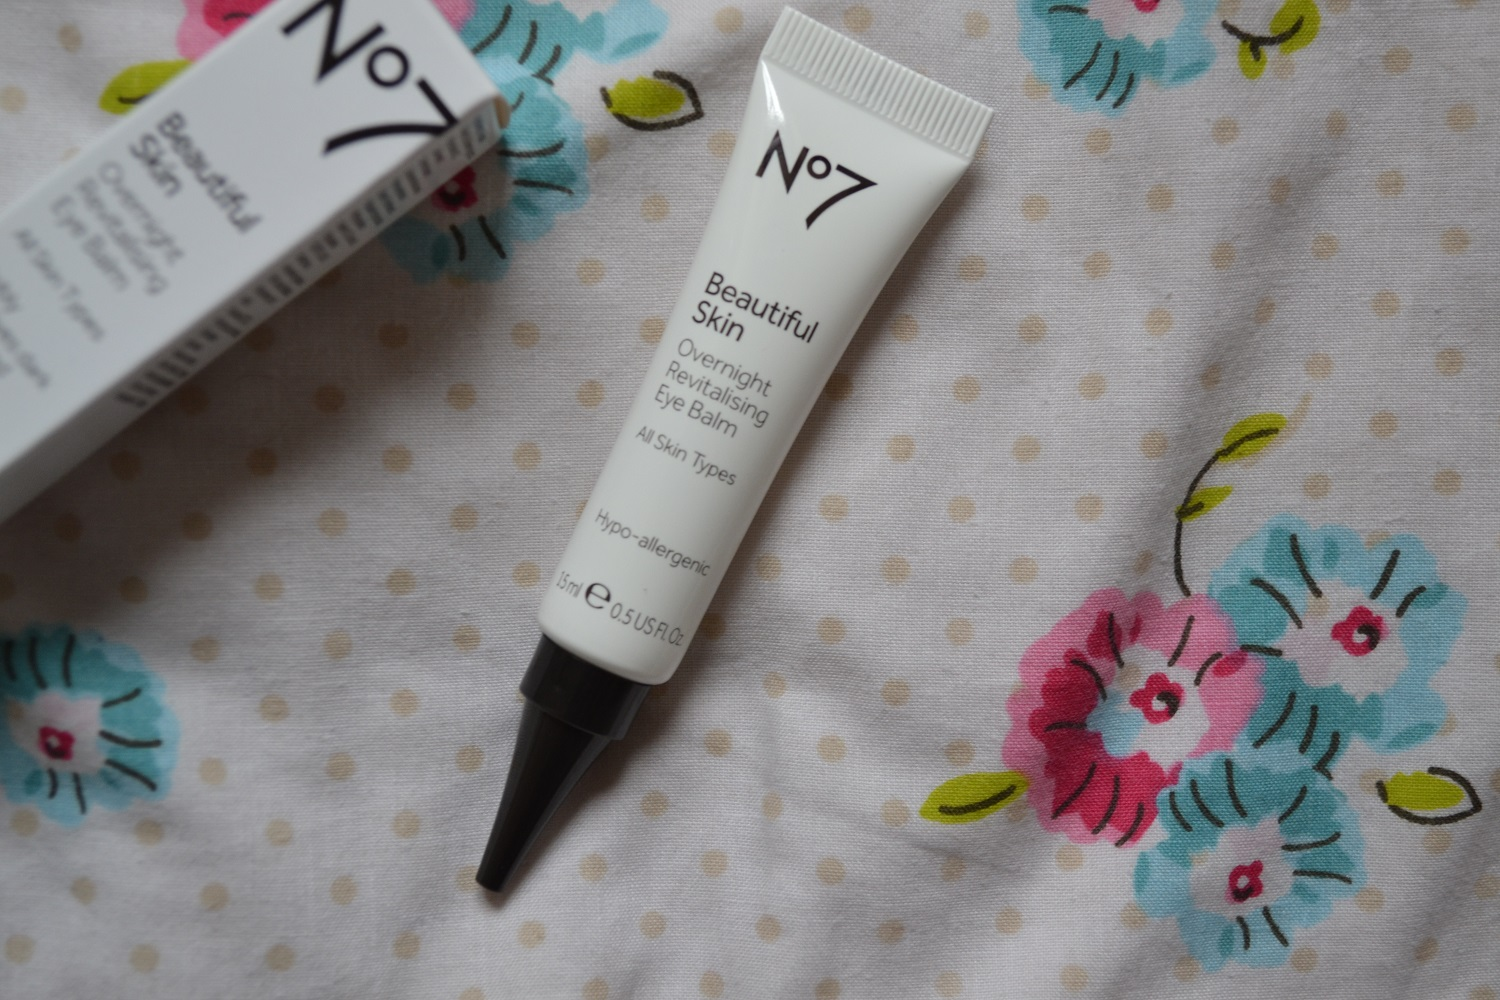 No7 Beautiful Skin Overnight Revitalising Eye Balm